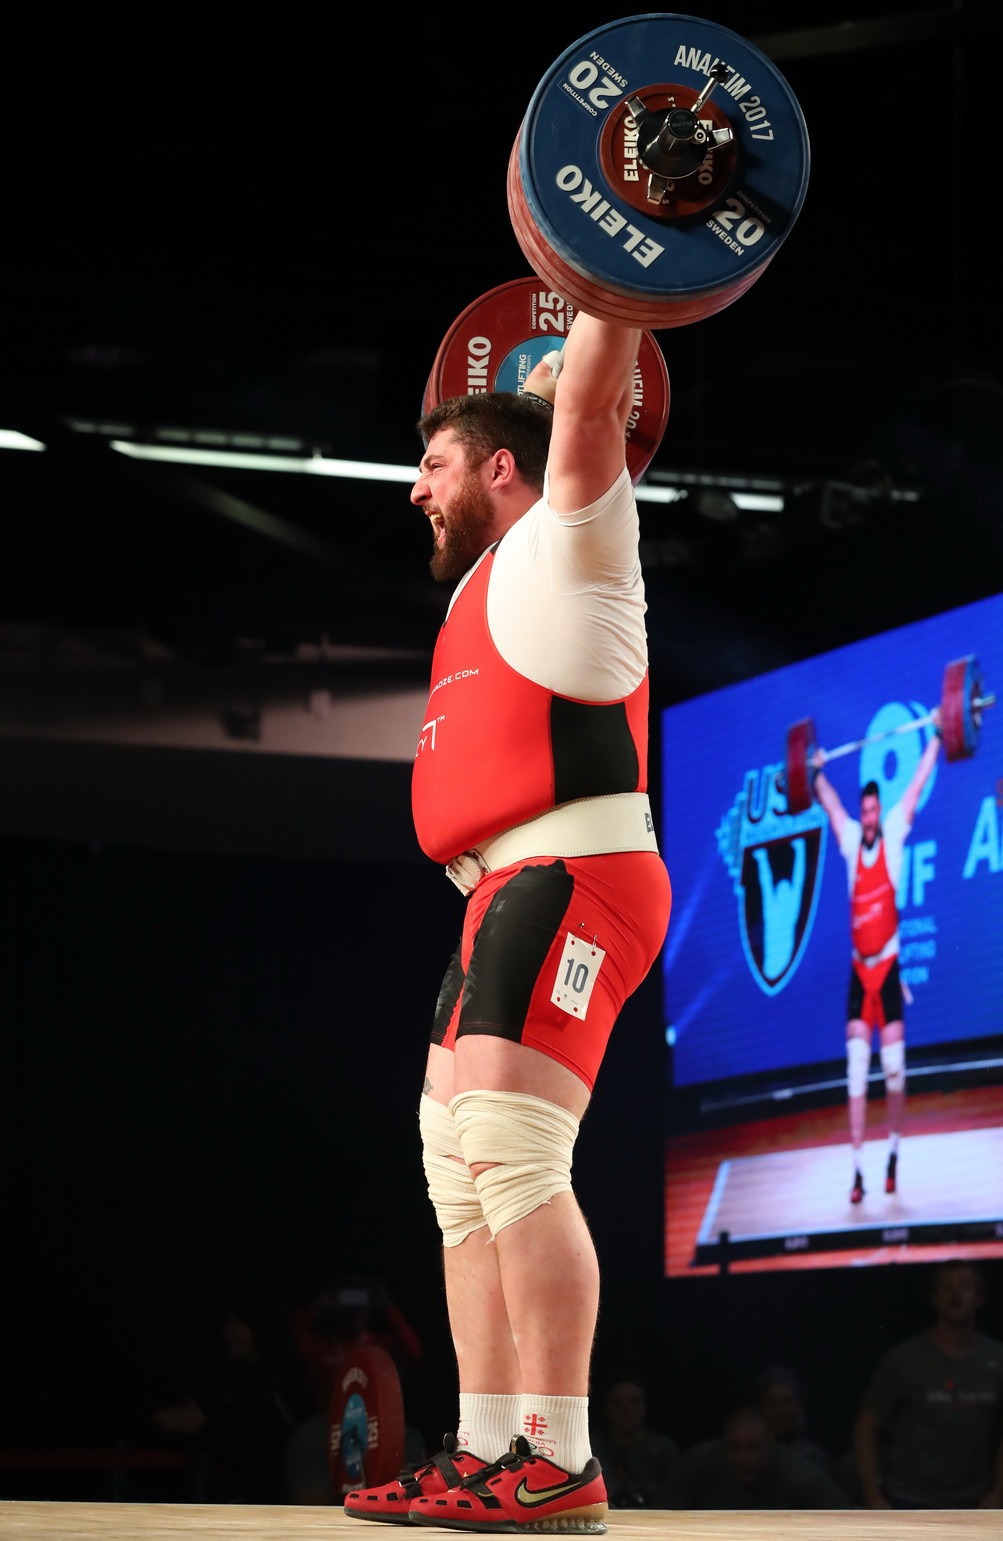 Reigning Olympic champion Lasha Talakhadze broke the men's over 105kg snatch and overall world records on his way to claiming a hat-trick of gold medals today ©IWF